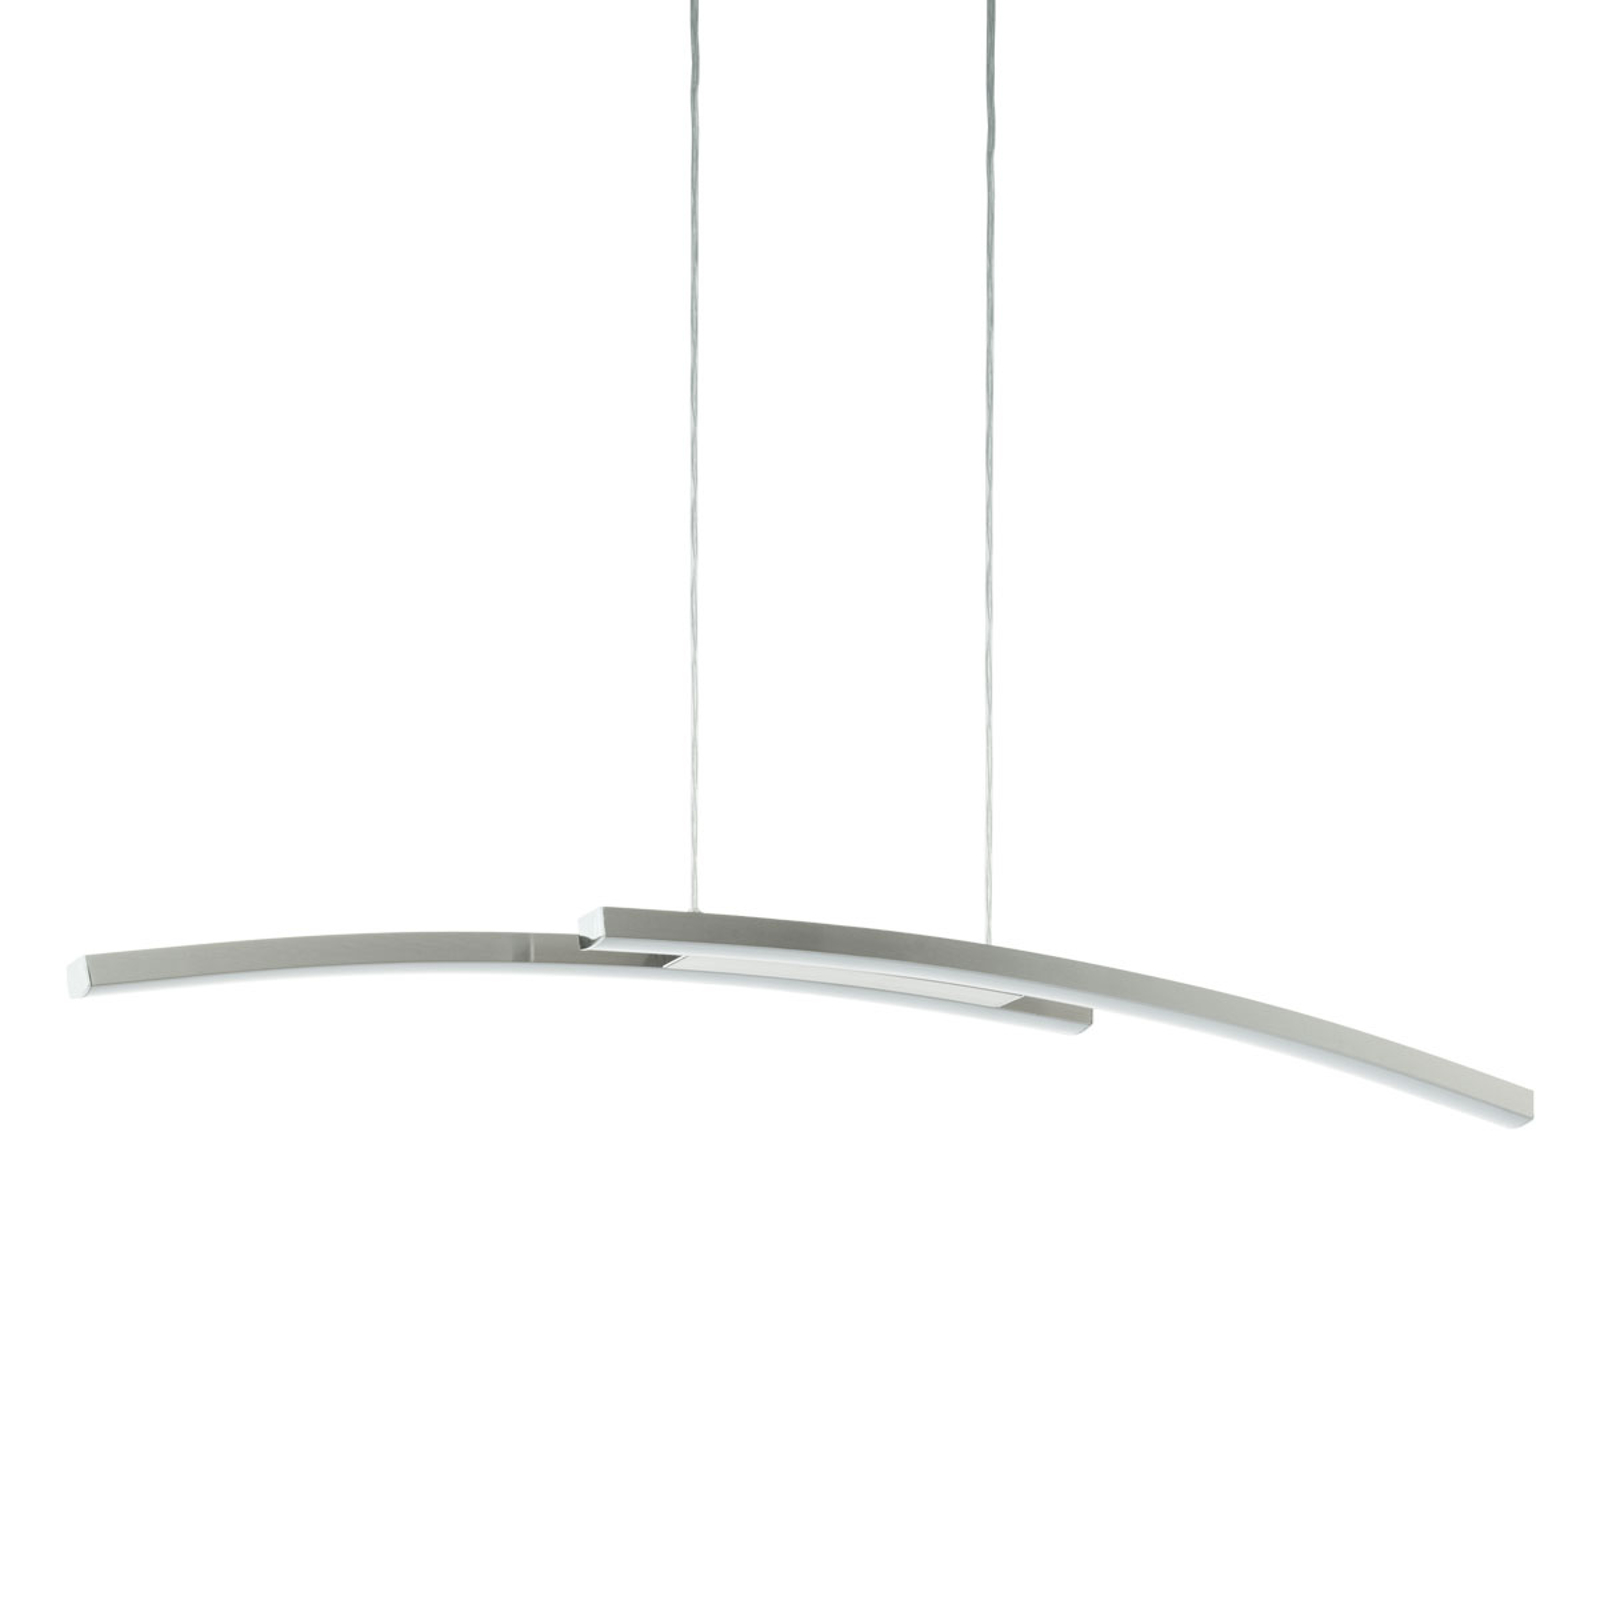 EGLO connect Fraioli-C LED hanglamp, gebogen